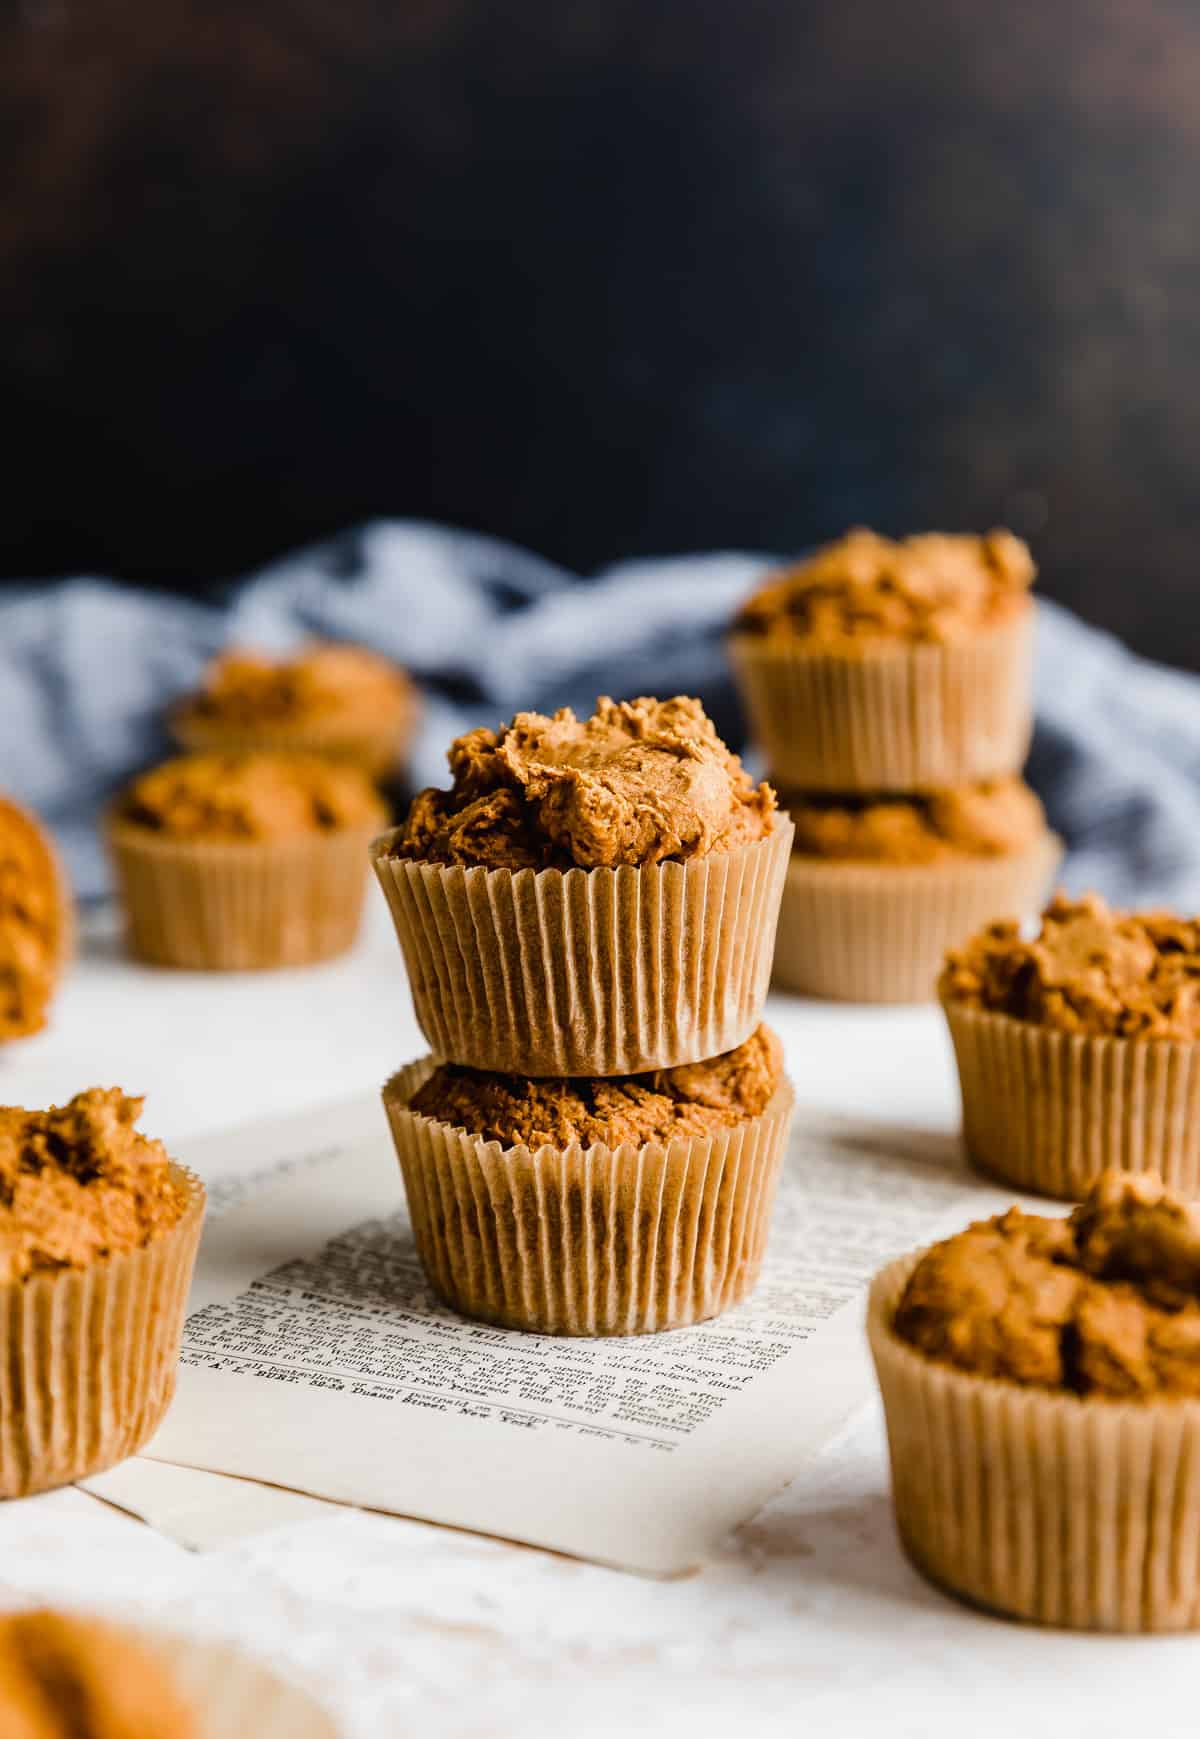 Two pumpkin muffins stack don top of each other against a brown background.